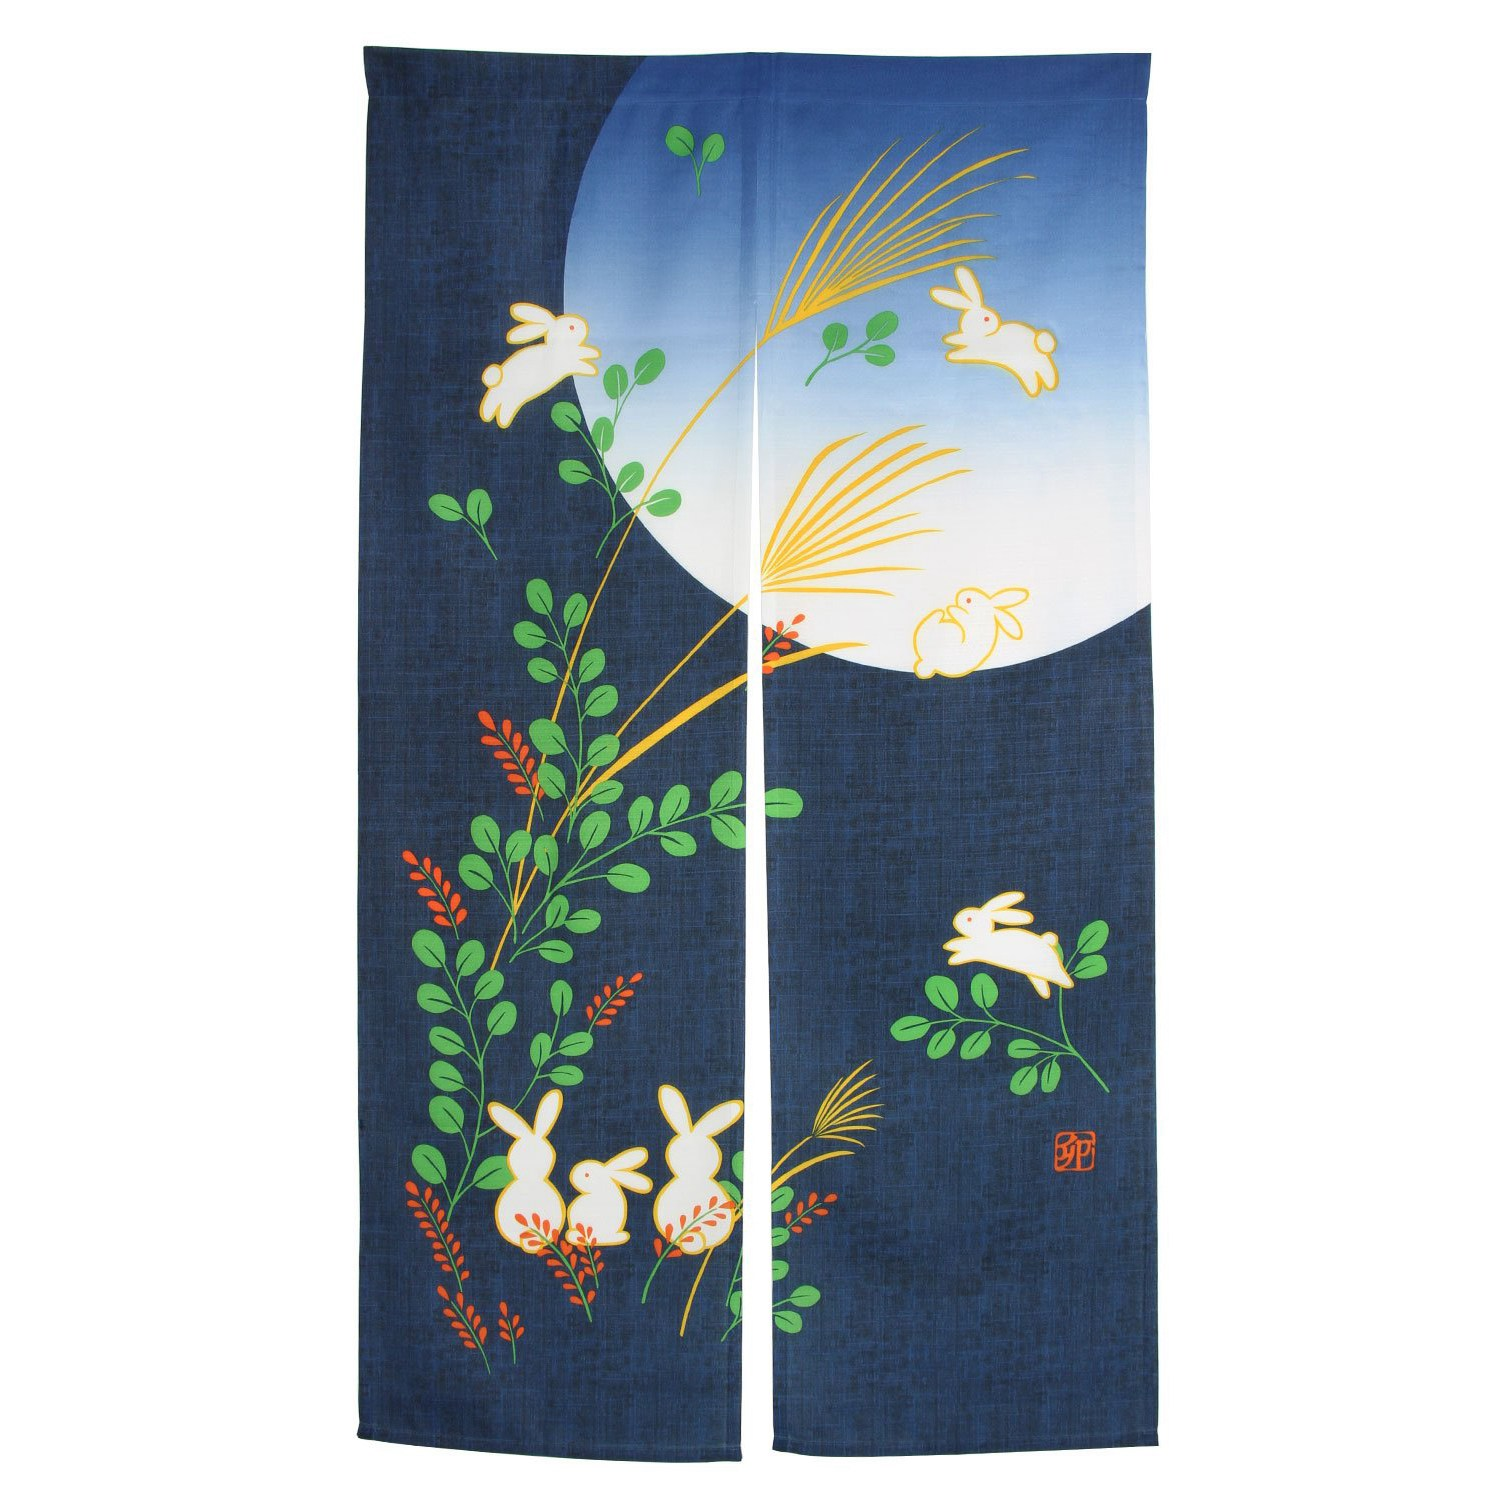 Botique-Japanese Doorway Curtain Noren Rabbit Under Moon For Home Decoration 85X150Cm